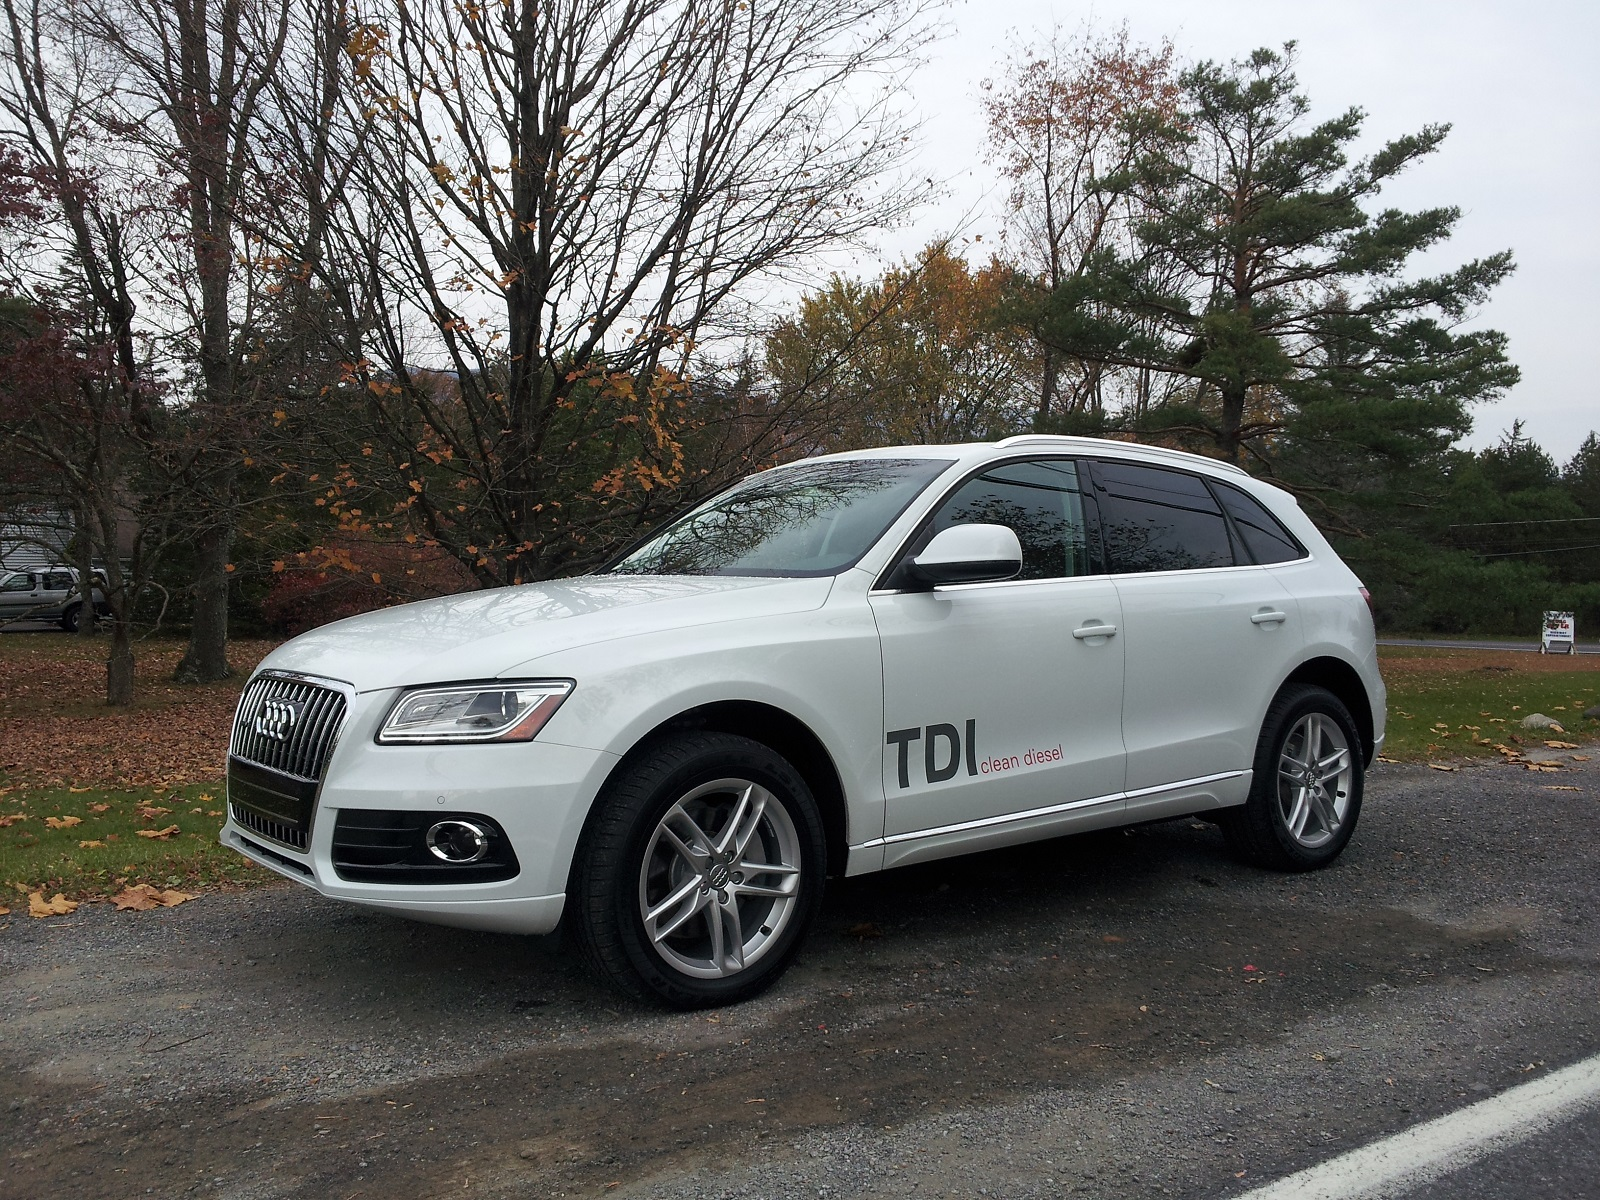 news tdi updated audi lineup drivers priced side view